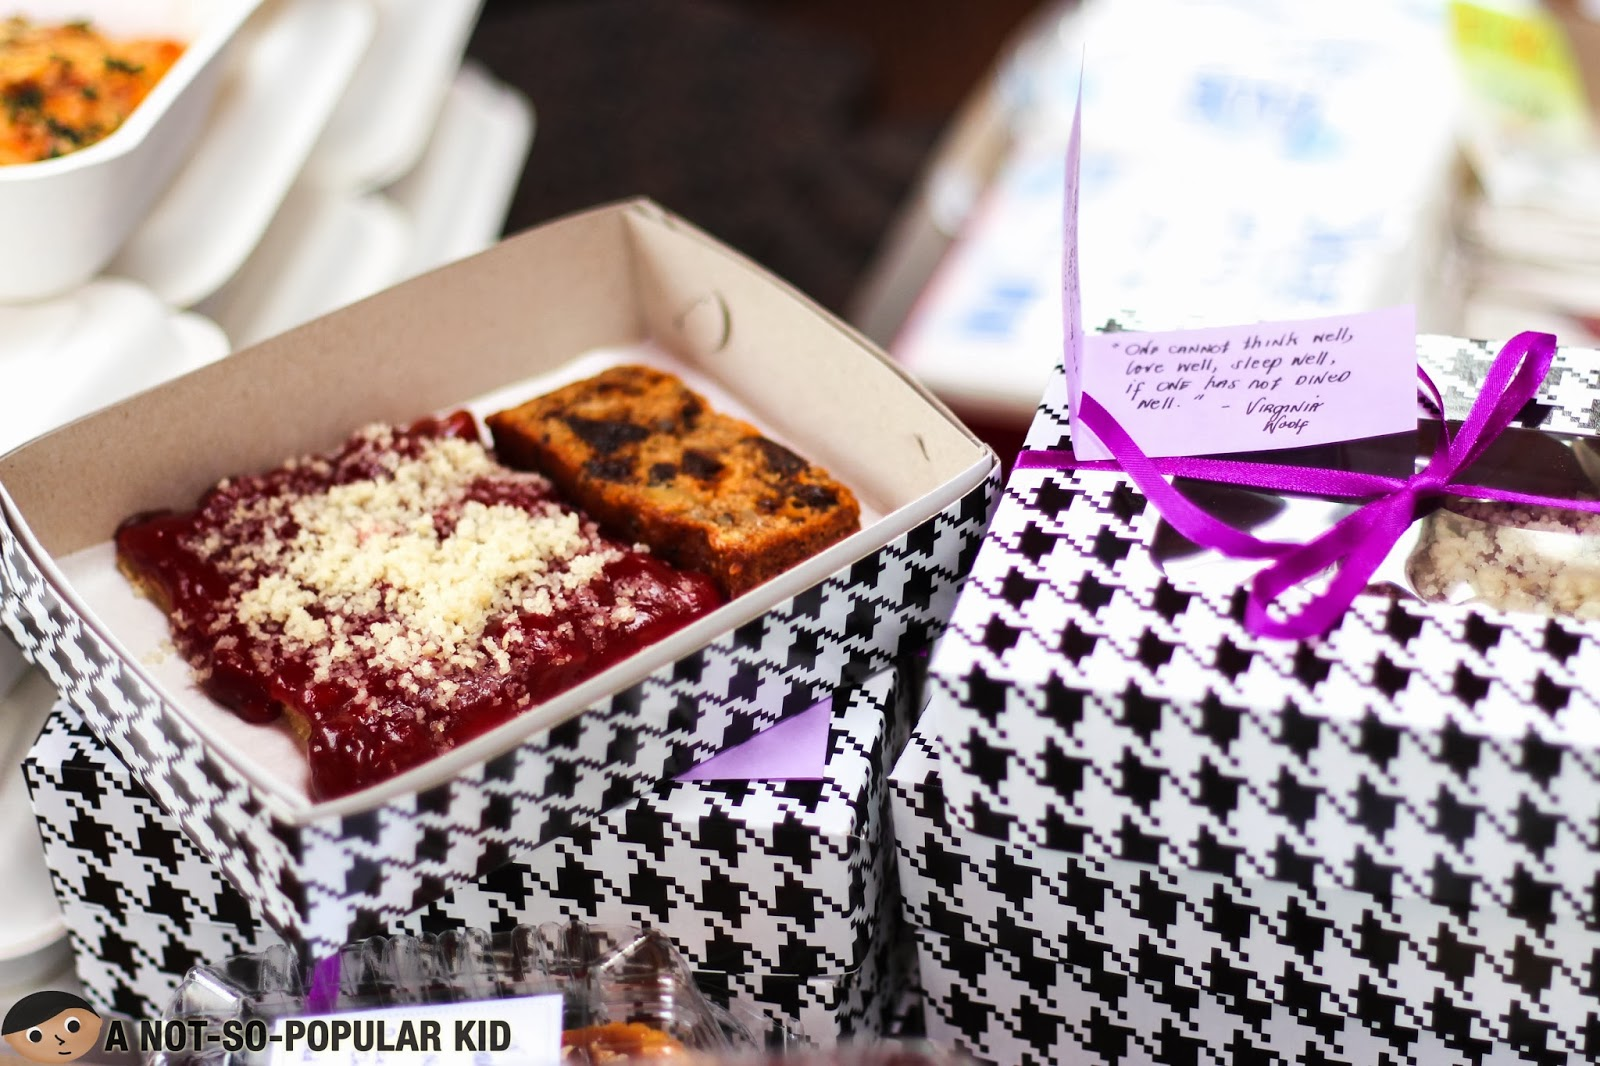 Chynna Ortaleza's Cherry Pizza and Banana Prune Bread in an Adorable Package